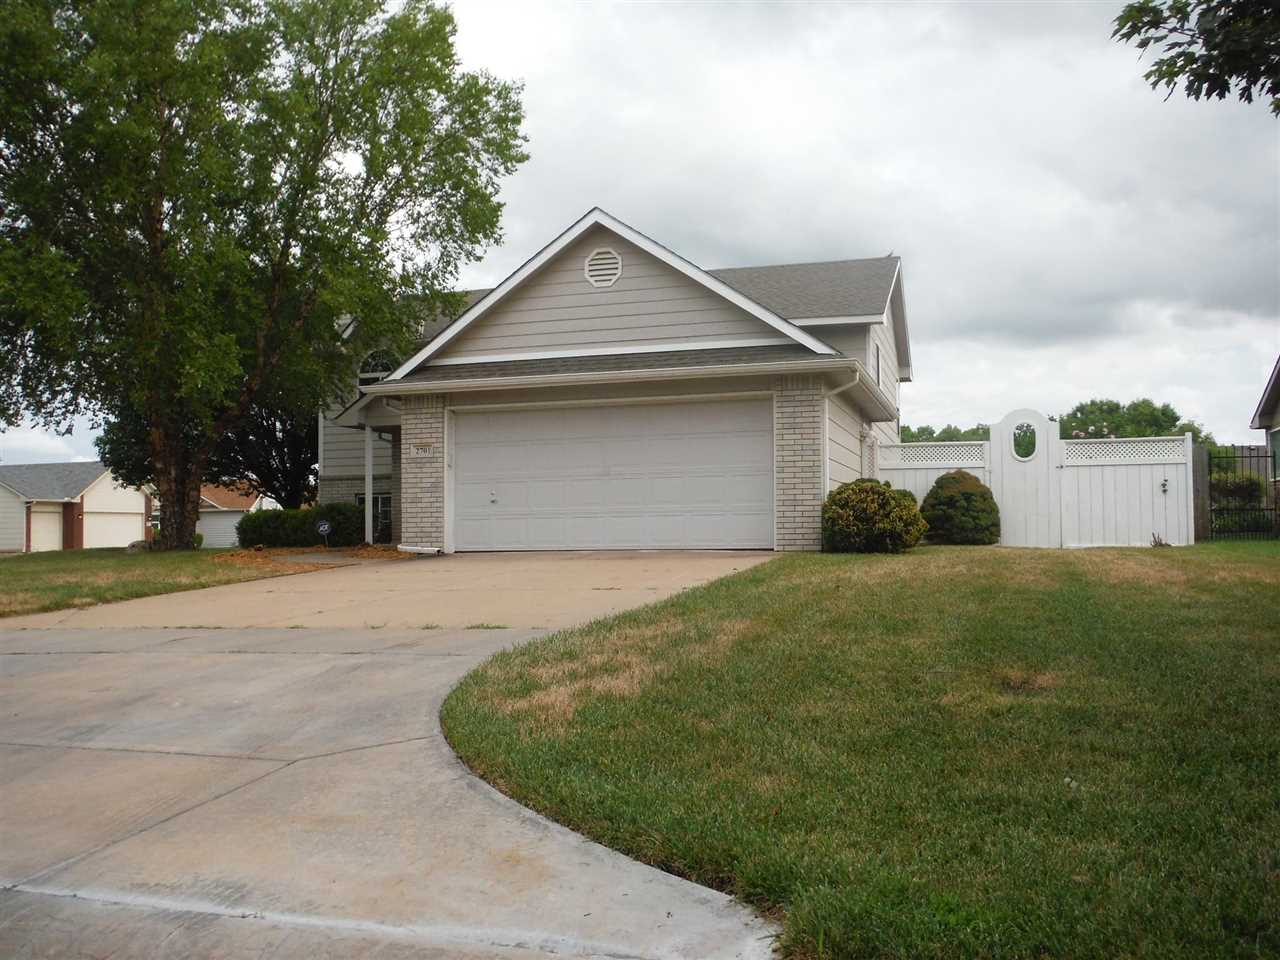 4 bedroom 3 bathroom home on a corner lot with tons of extras. Brazilian walnut flooring on the uppe